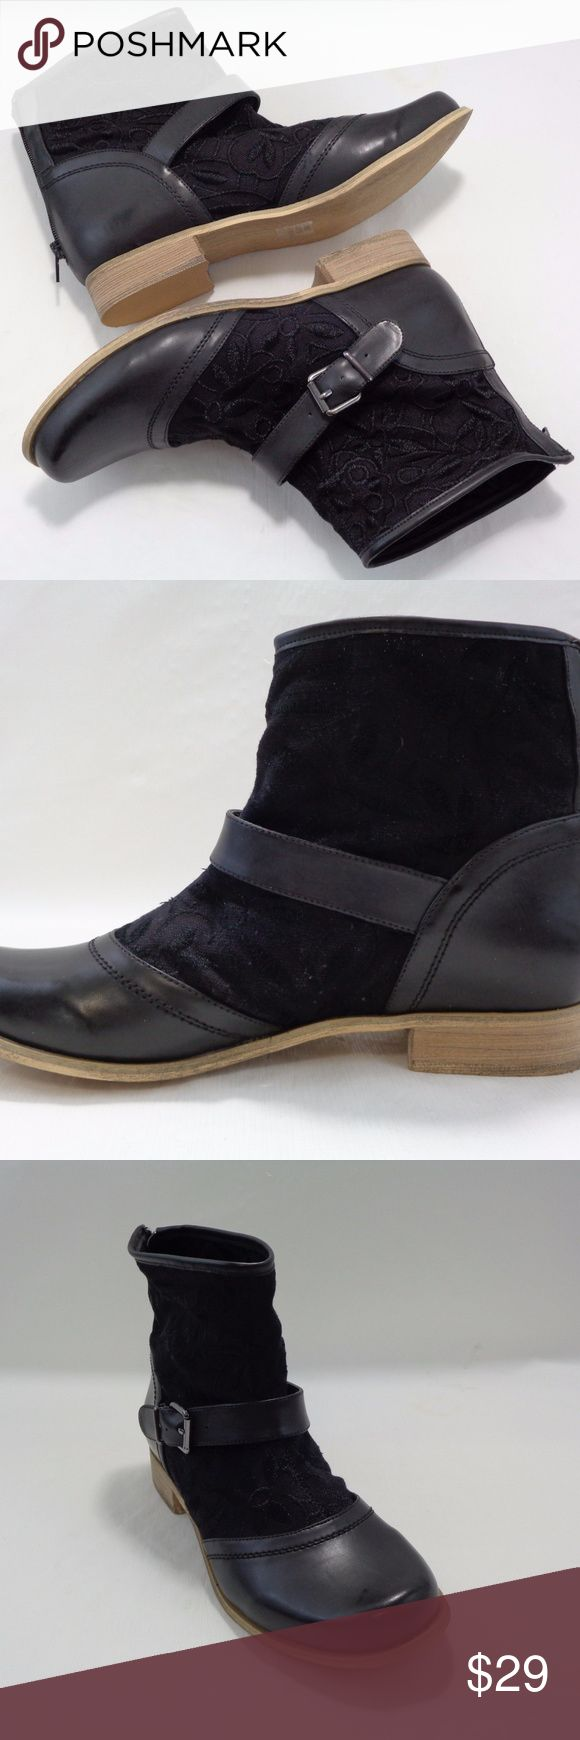 NWB Machi Womens Size 5.5 Black Quilted Zip Lace Up Sneakers Ankle Boots